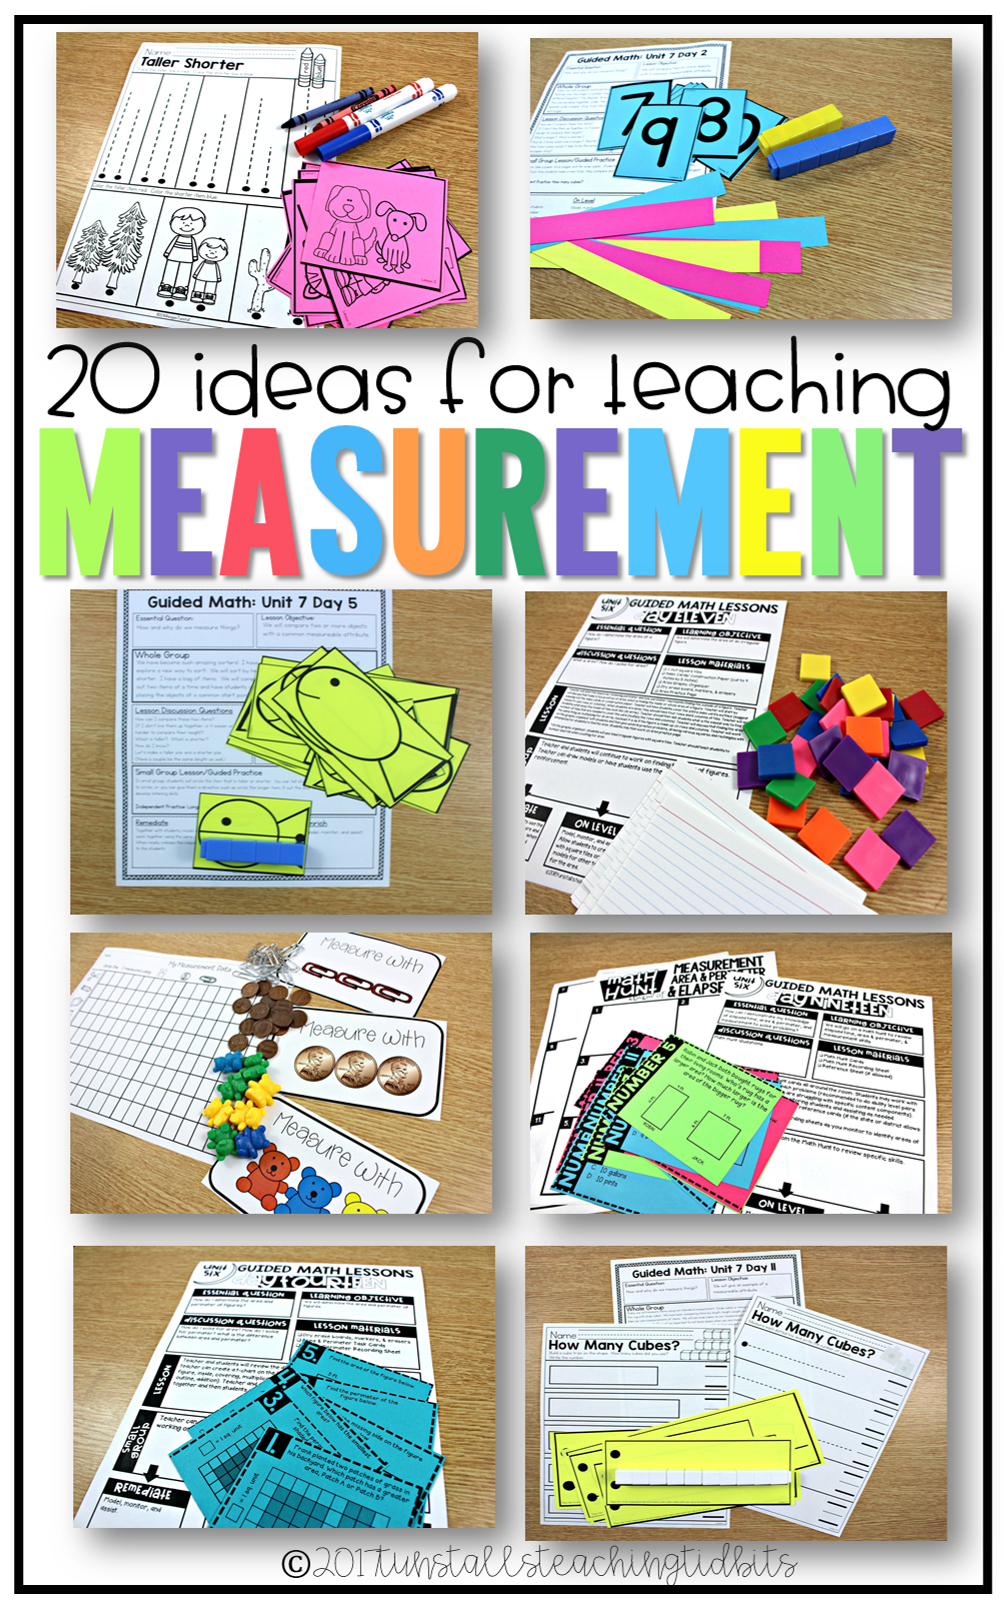 20 ideas to teach measurement in kindergarten, 1st, 2nd, and 3rd grade- there are so many fun activities here!